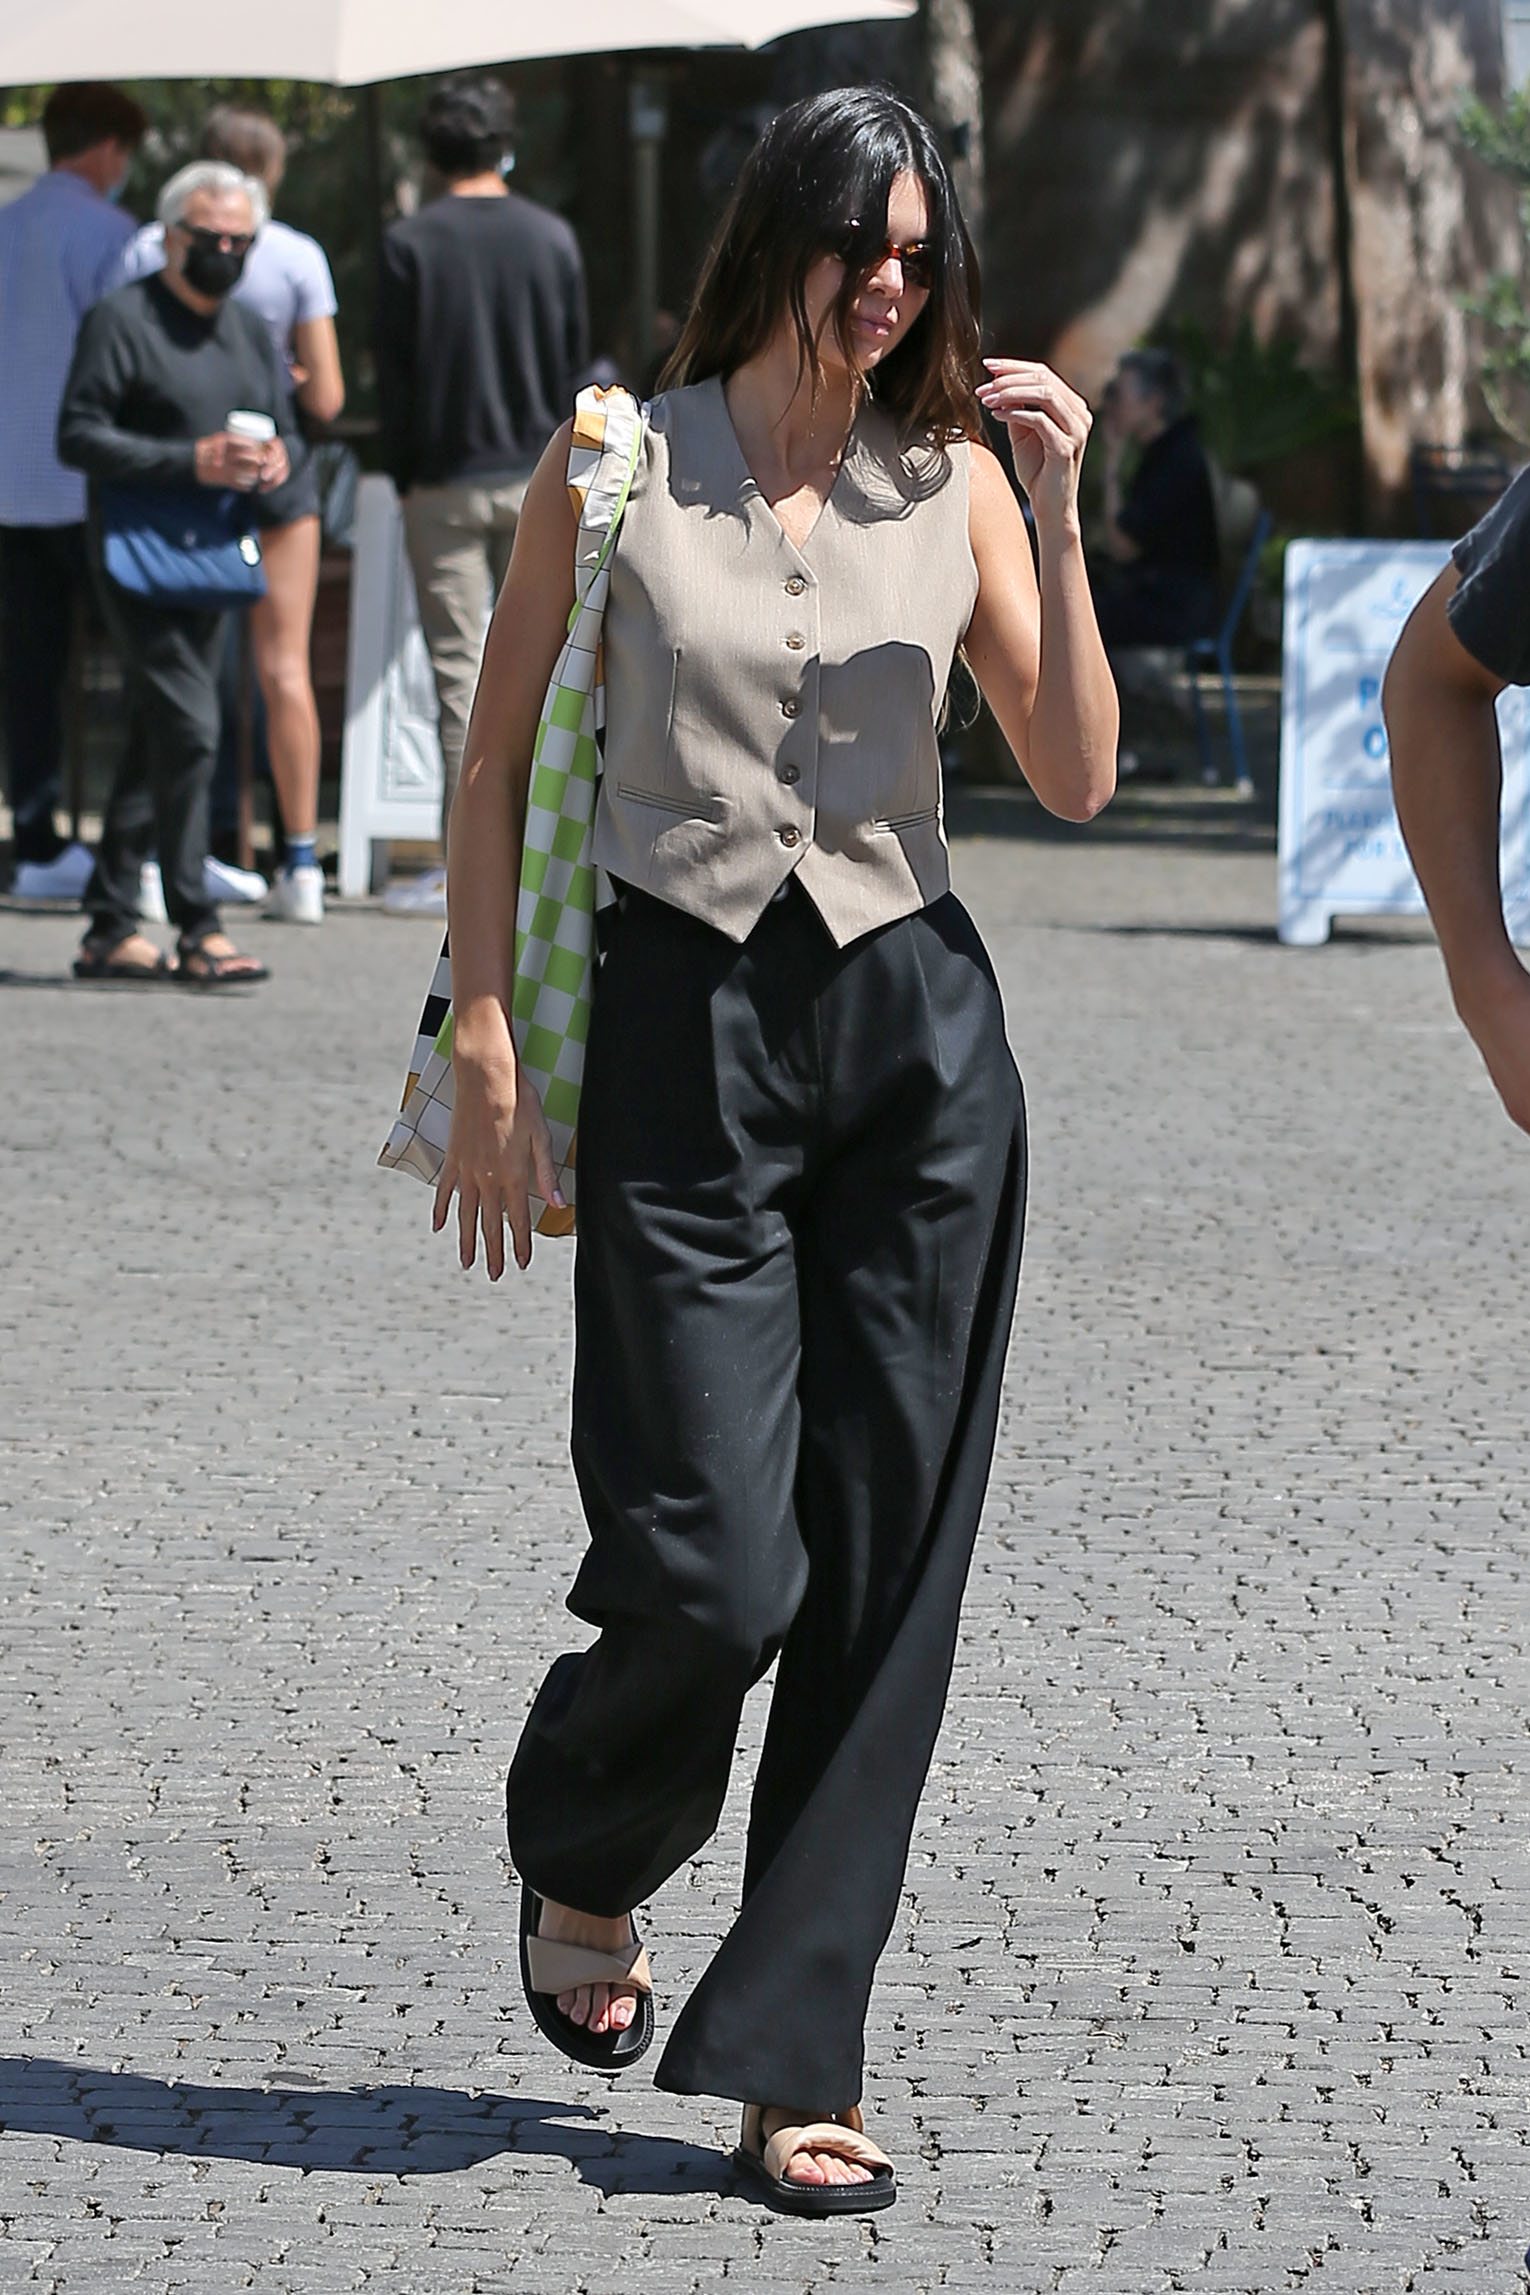 kendall-jenner-out-in-los-angeles-may-26-2021